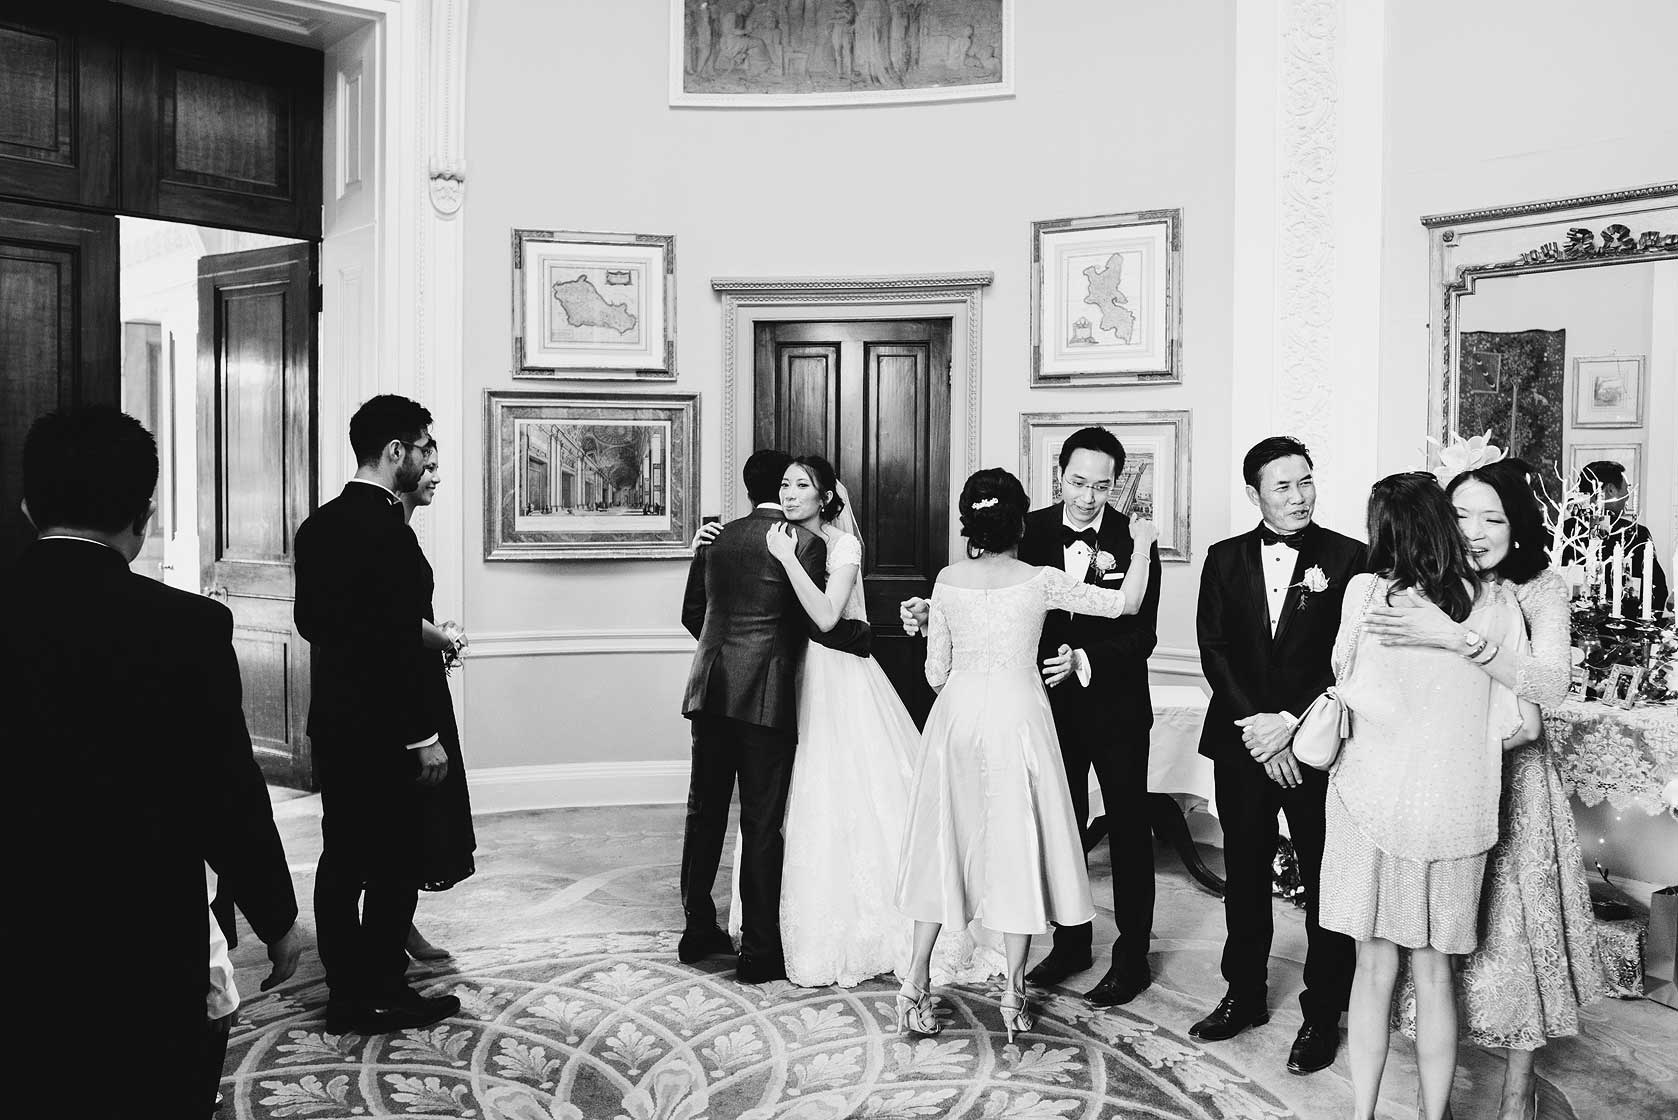 Reportage Wedding Photography at Stoke Park